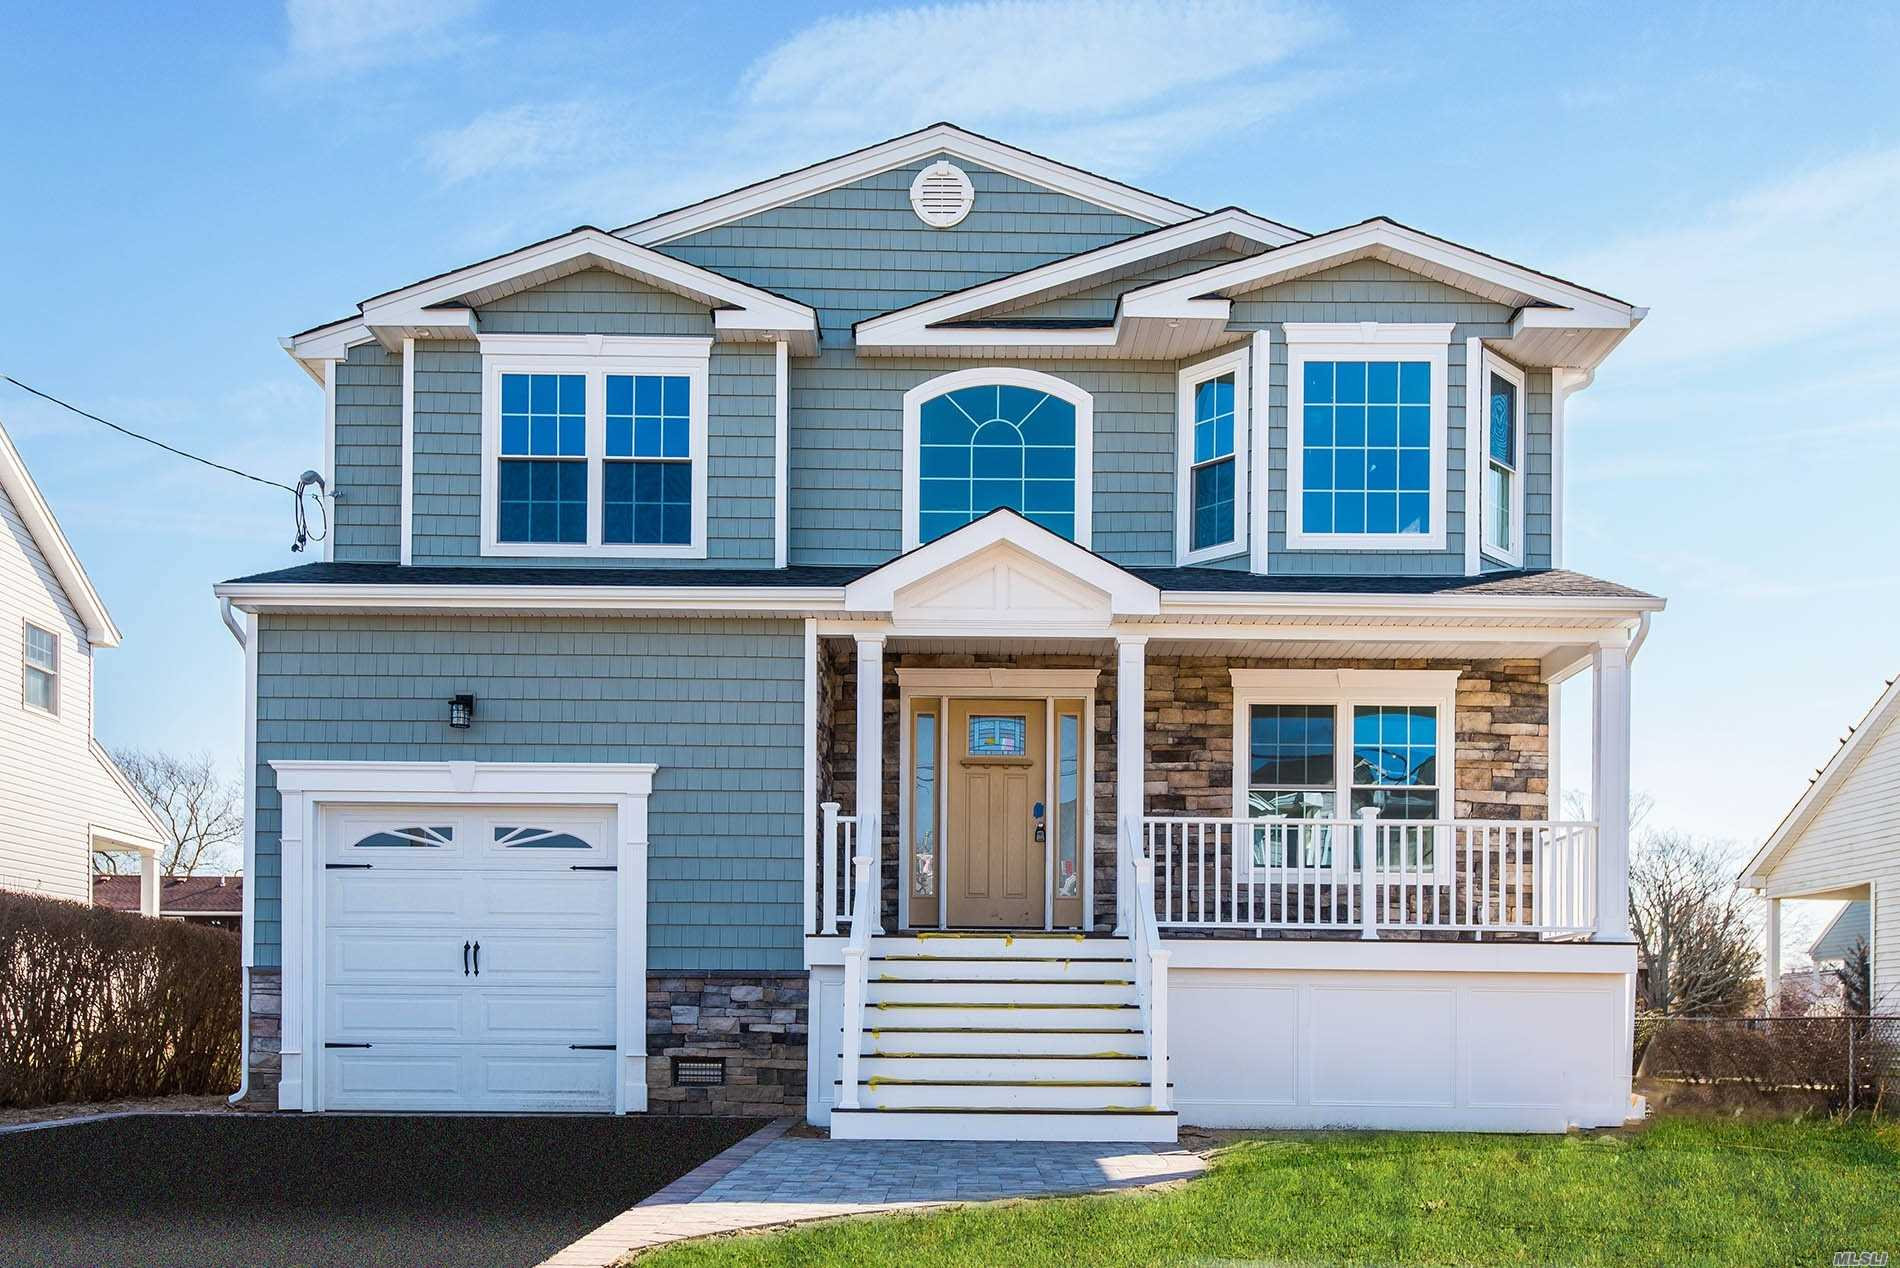 Stunning New Construction Waterfront Colonial Seconds To The Bay. Large Open Concept. Custom Designed Eik W/7Ft Granite Island , Pantry, Sliders To Backyard, Family Room W/ Gas Fireplace.Formal /D/R & L/R. 1/2 Bath, 2nd Fl Features: Designer M/B/Suite Cathedralized & Skylights, Wic, Sliders To Balcony With Bay Views, 3 Lge Additional B/R, Full Bath, W/D 2nd Fl Custom Crown Molding Through-Out, Cac, Hvac, Igs, Landscape, Pavers.Built High Elevetion To Fema, Move Right Into Your Dream Home